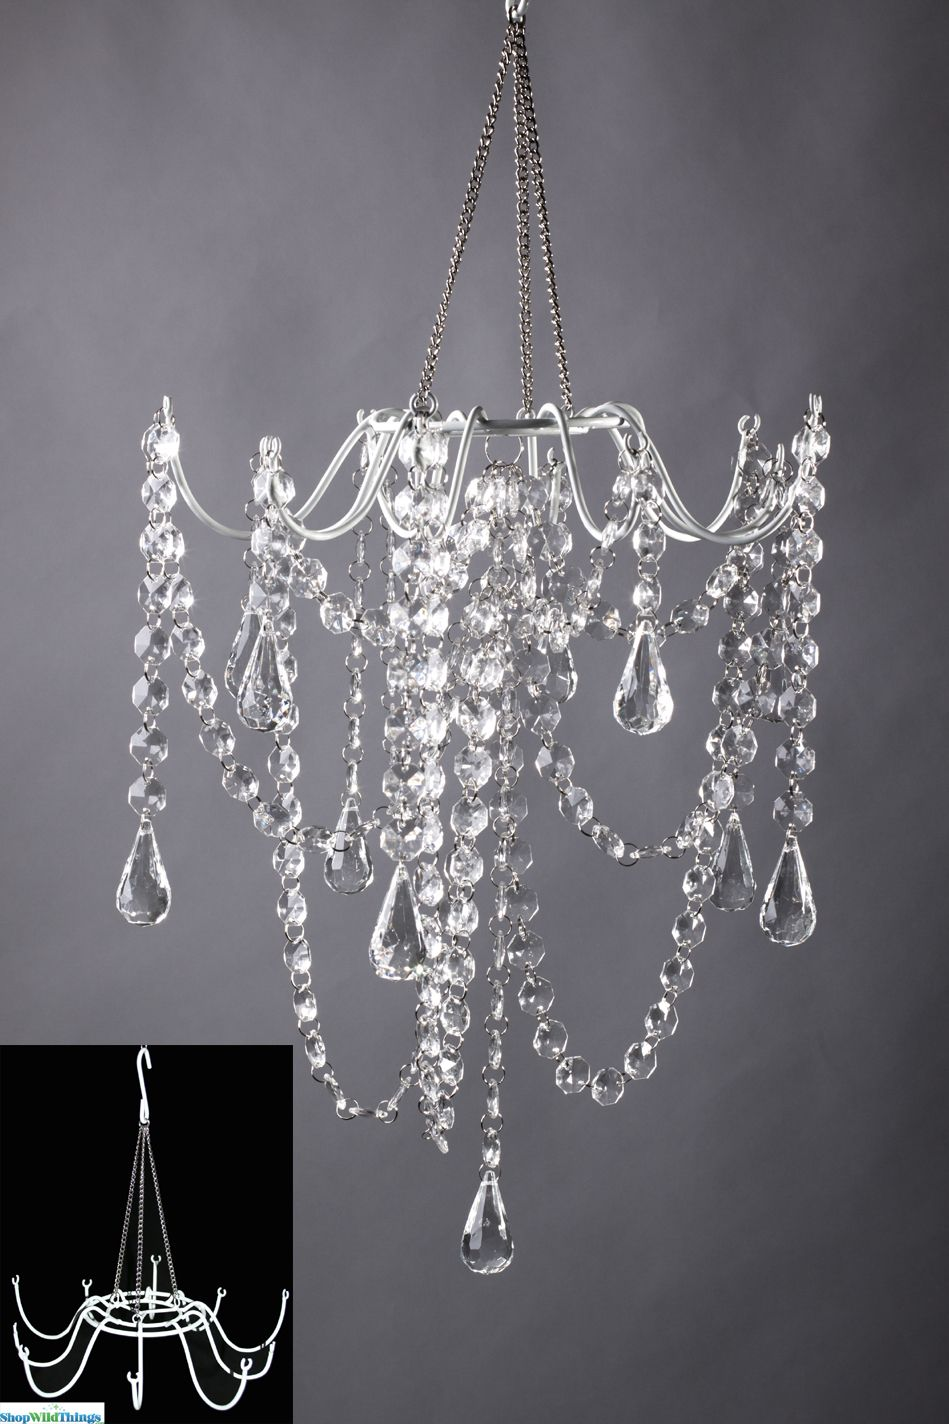 Create Your Very Own Chandelier Decoration Using Our White Metal Frame